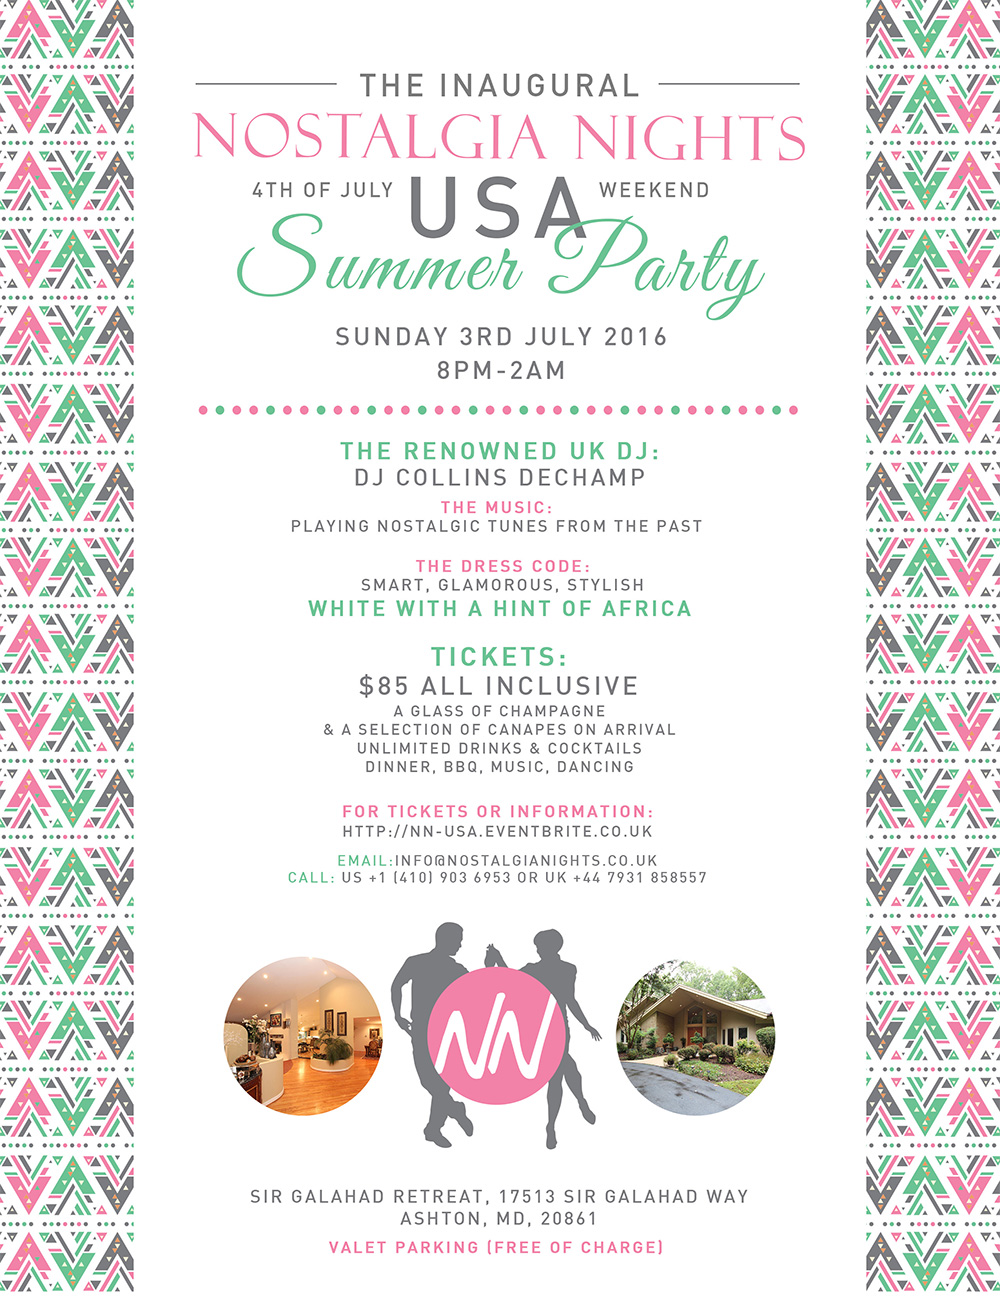 Nostalgia Nights Inaugural USA Summer Party 4th July 2016